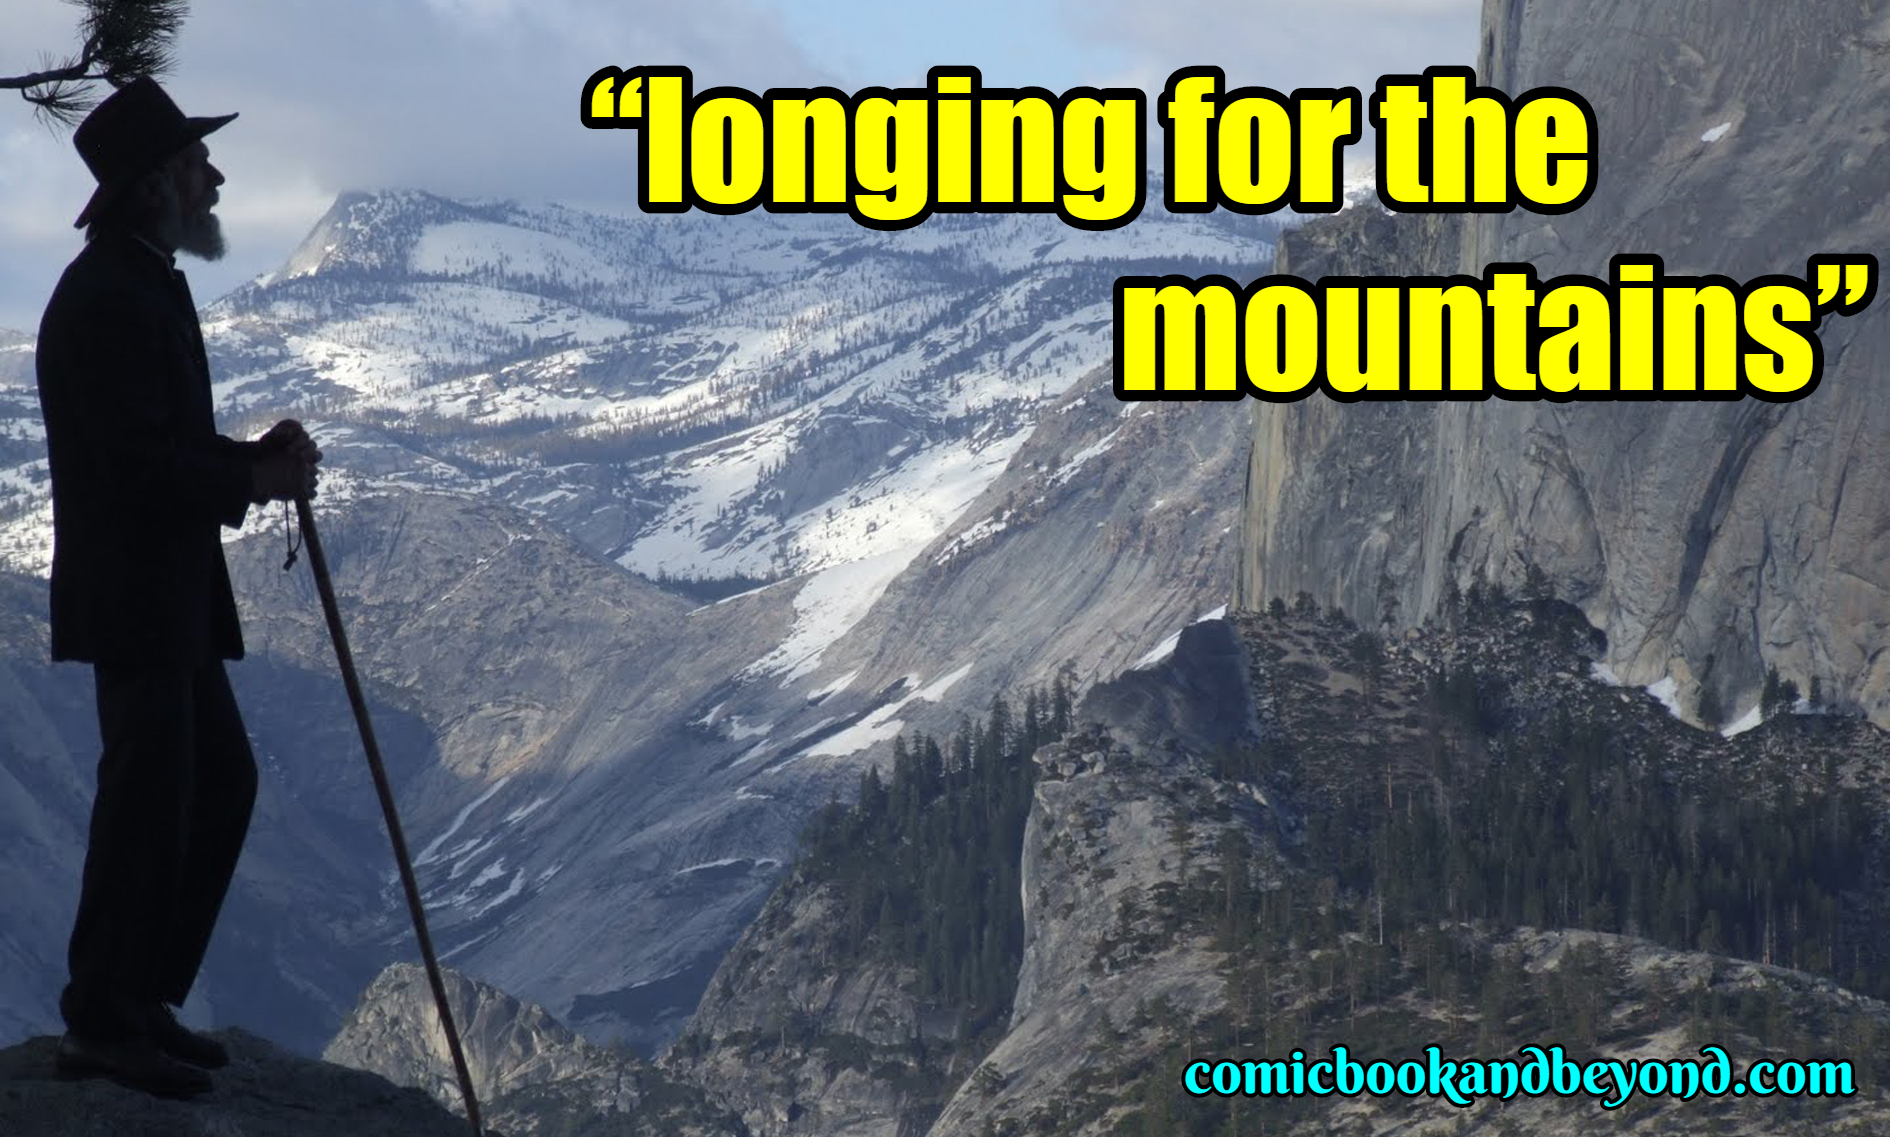 150 John Muir Quotes That Will Build Your Awareness About